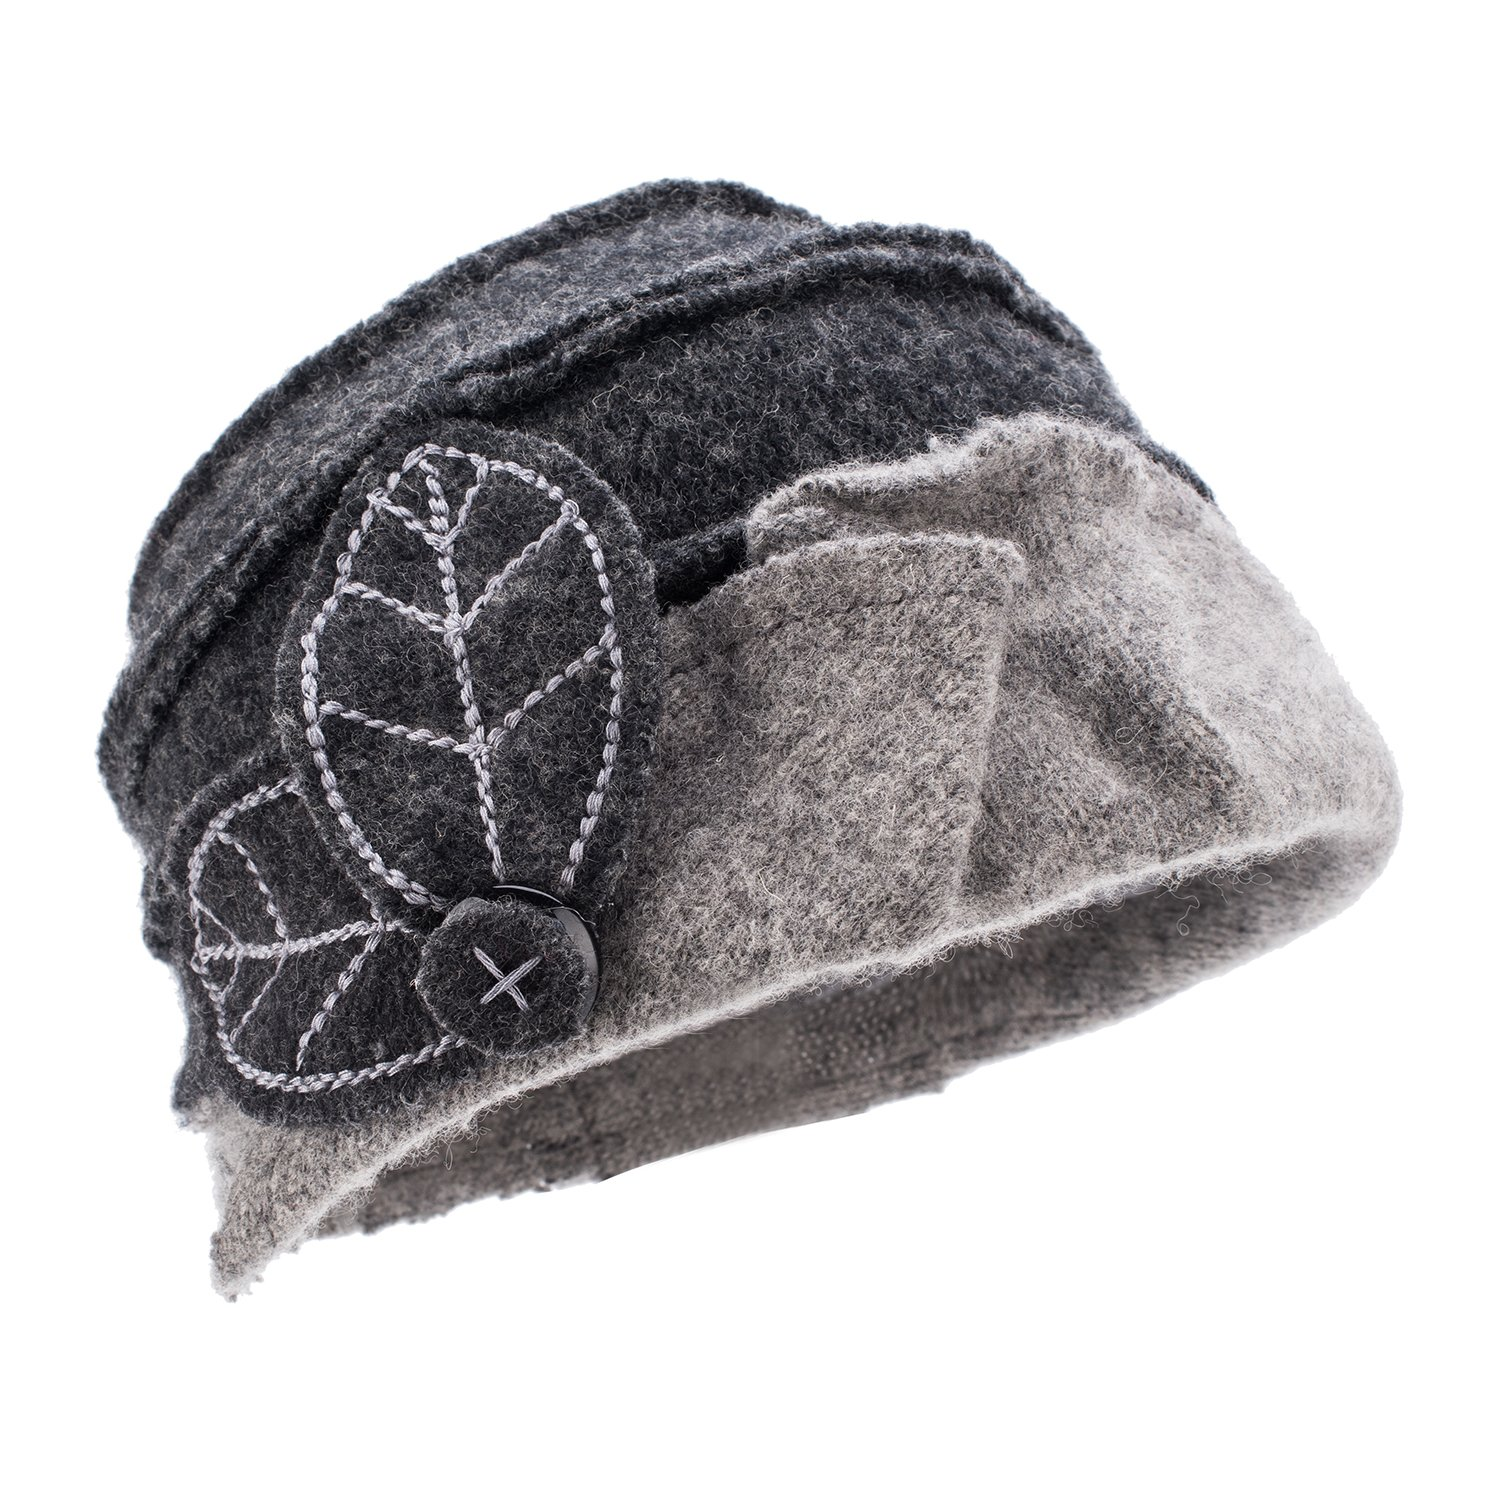 Lawliet Two-Tone Womens Ladies Winter 1920s 100% Wool Leaf Bucket Beret Cap Hat A375 (Dark Gray Top Light Gray Trim)